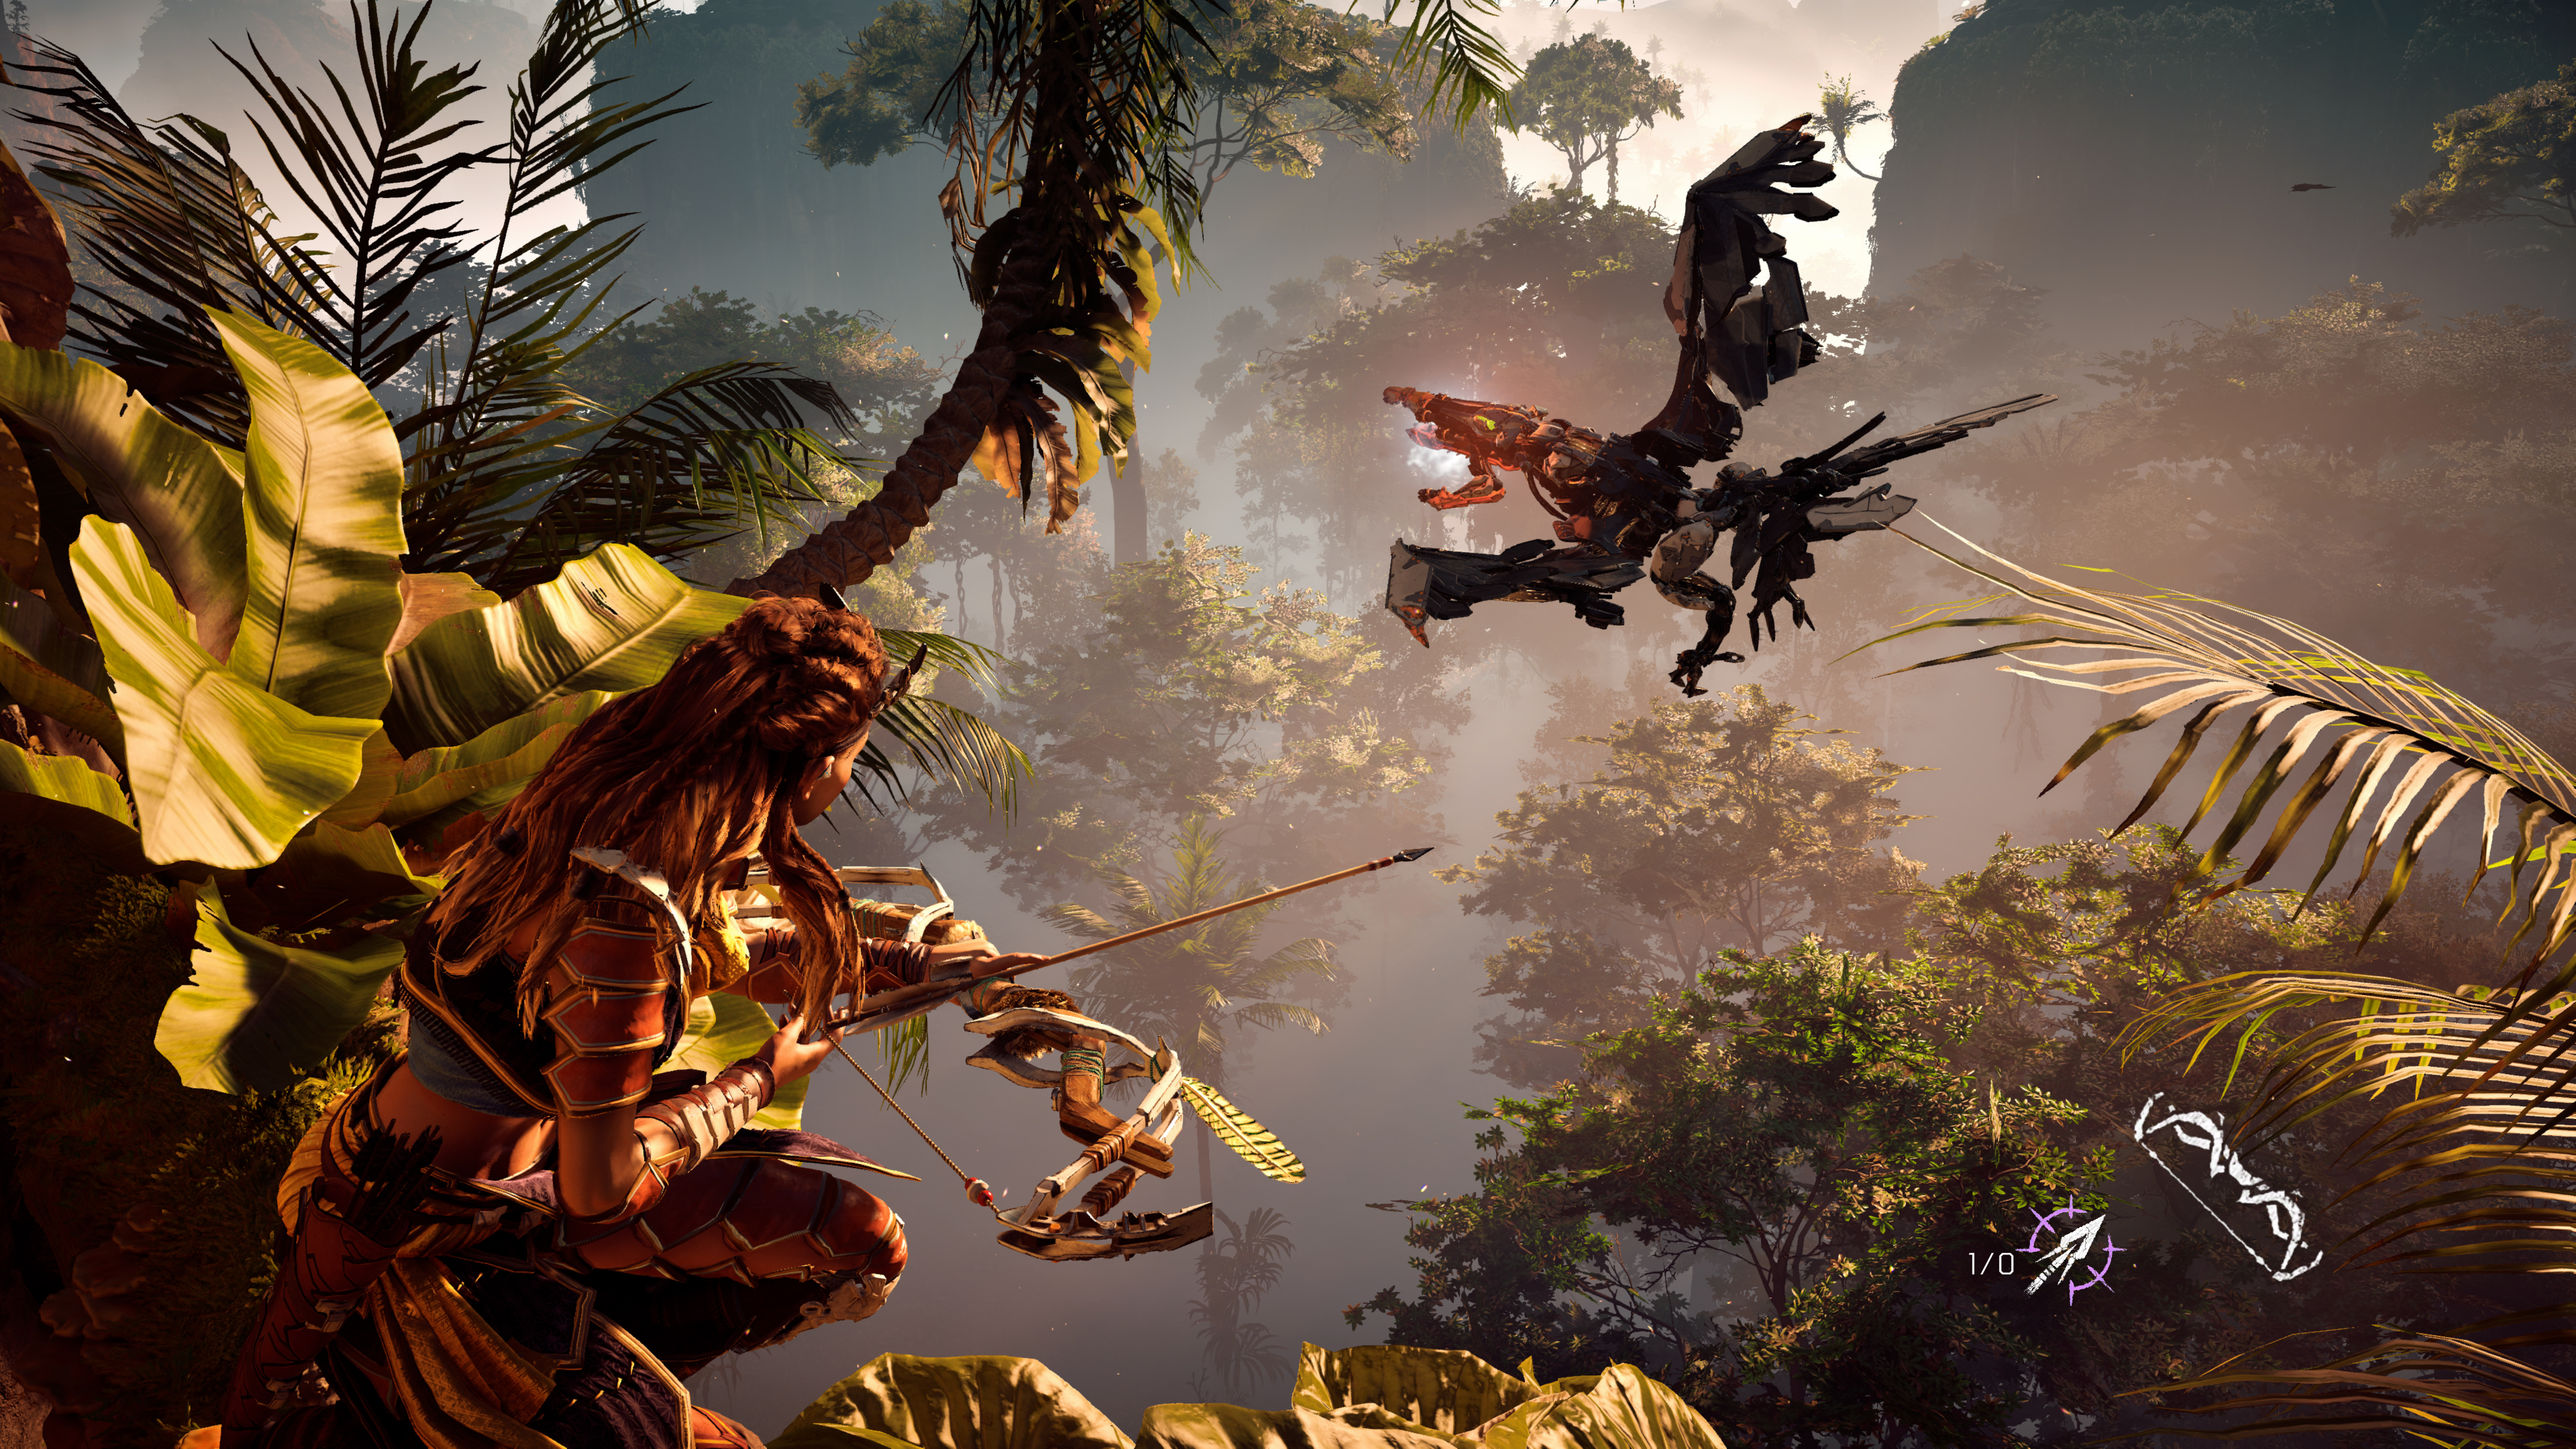 chequea-20-minutos-gameplay-horizon-zero-dawn-frikigamers.com